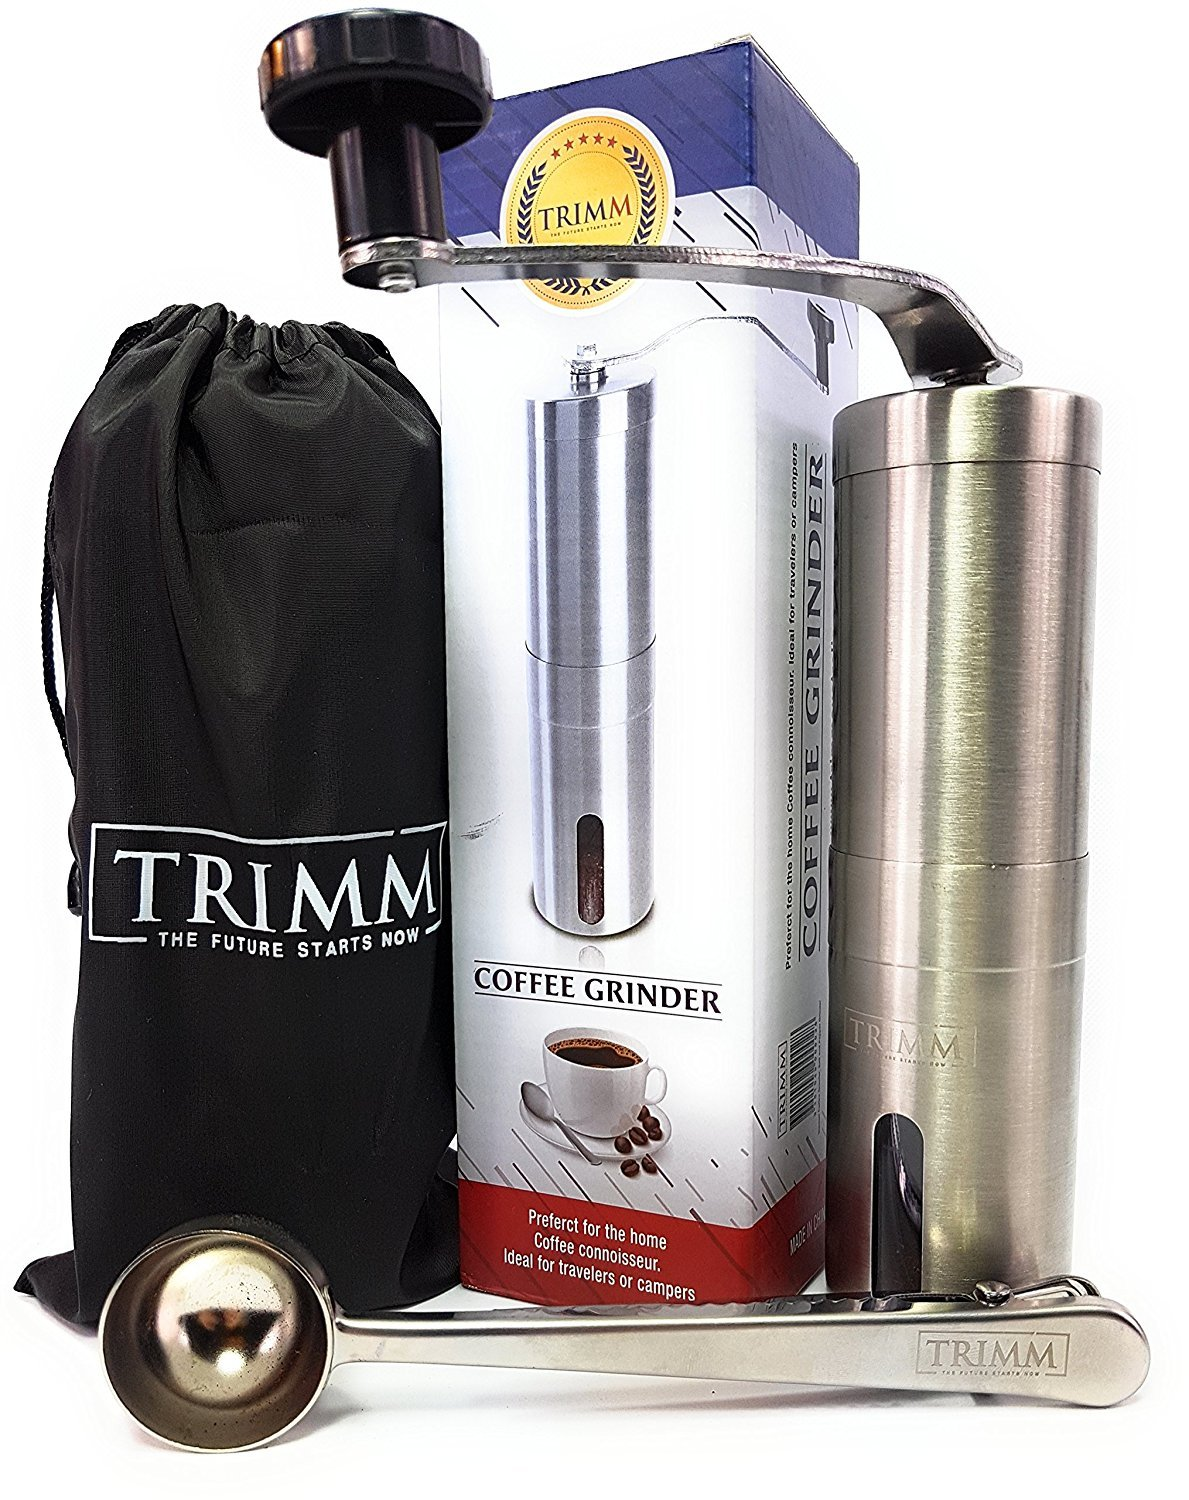 Single-Serve Travel Size, Manual Coffee Grinders | Portable, Stainless Steel Coffee Bean Grinder Set | Hand Crank Coffee and Espresso Grinder with Measuring Spoon and Cleaning Brush | Coffee by Trimm